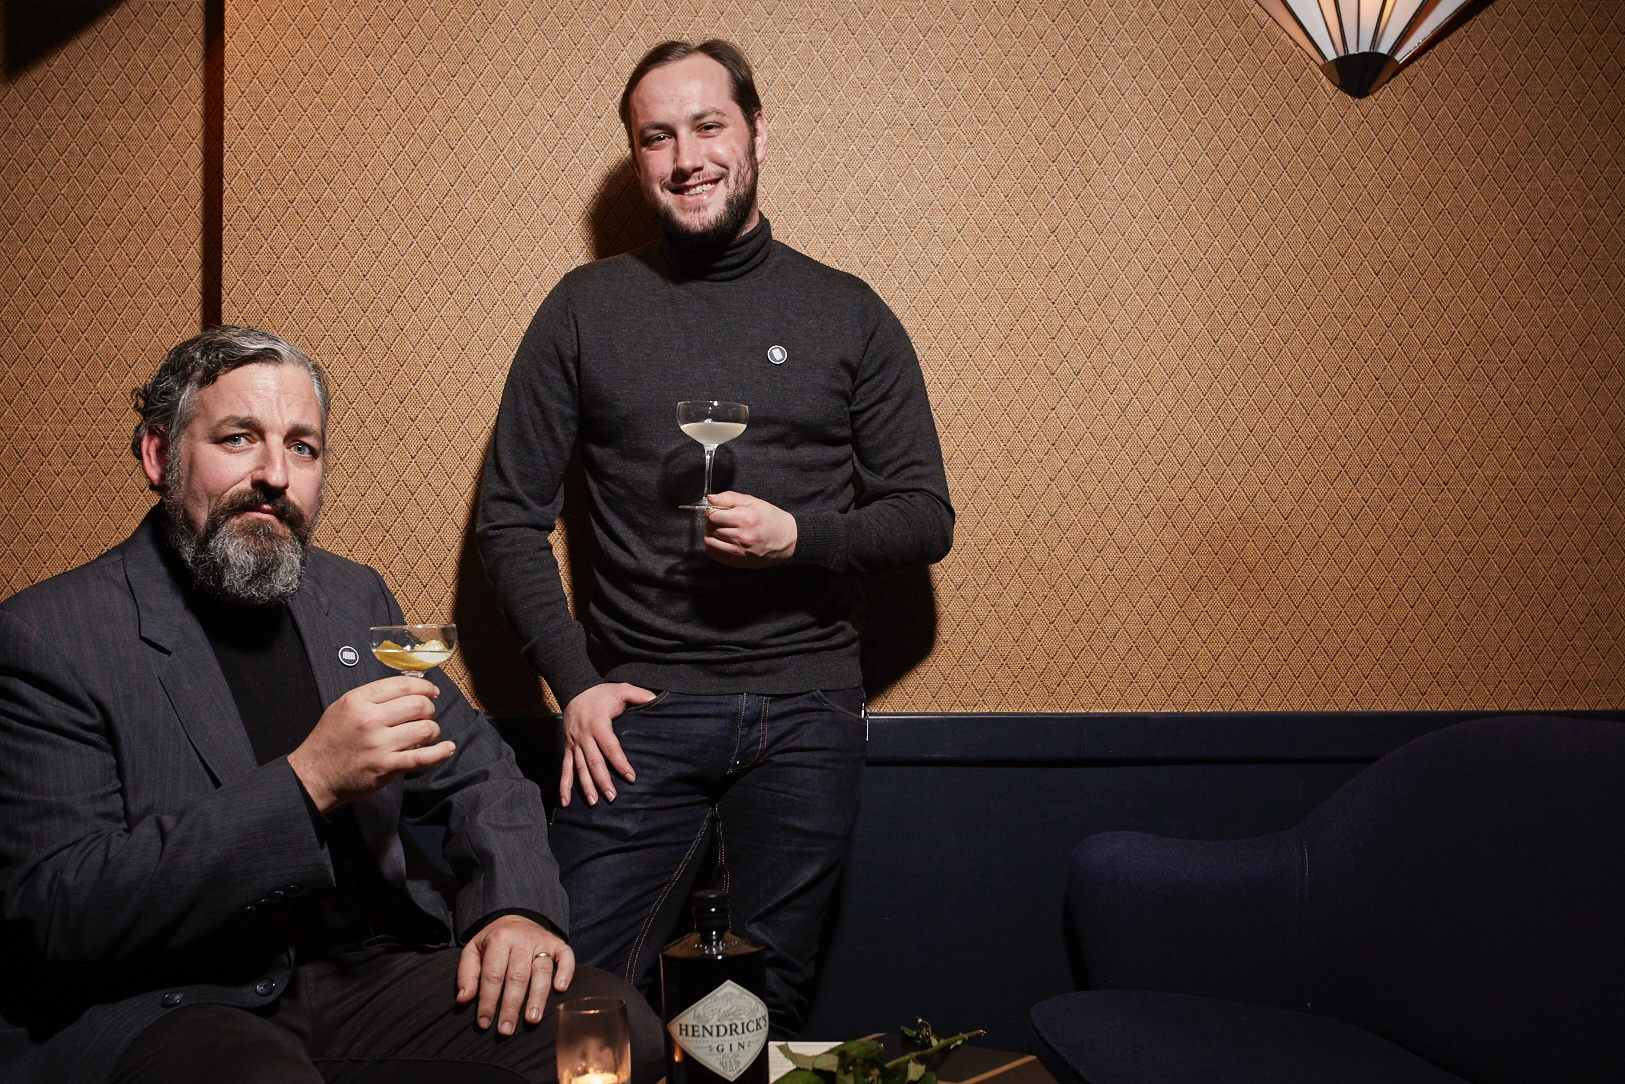 Pierre-Marie Bisson & Craig Judkins at Joyeux Bordel Turtleneck Club London Shoreditch